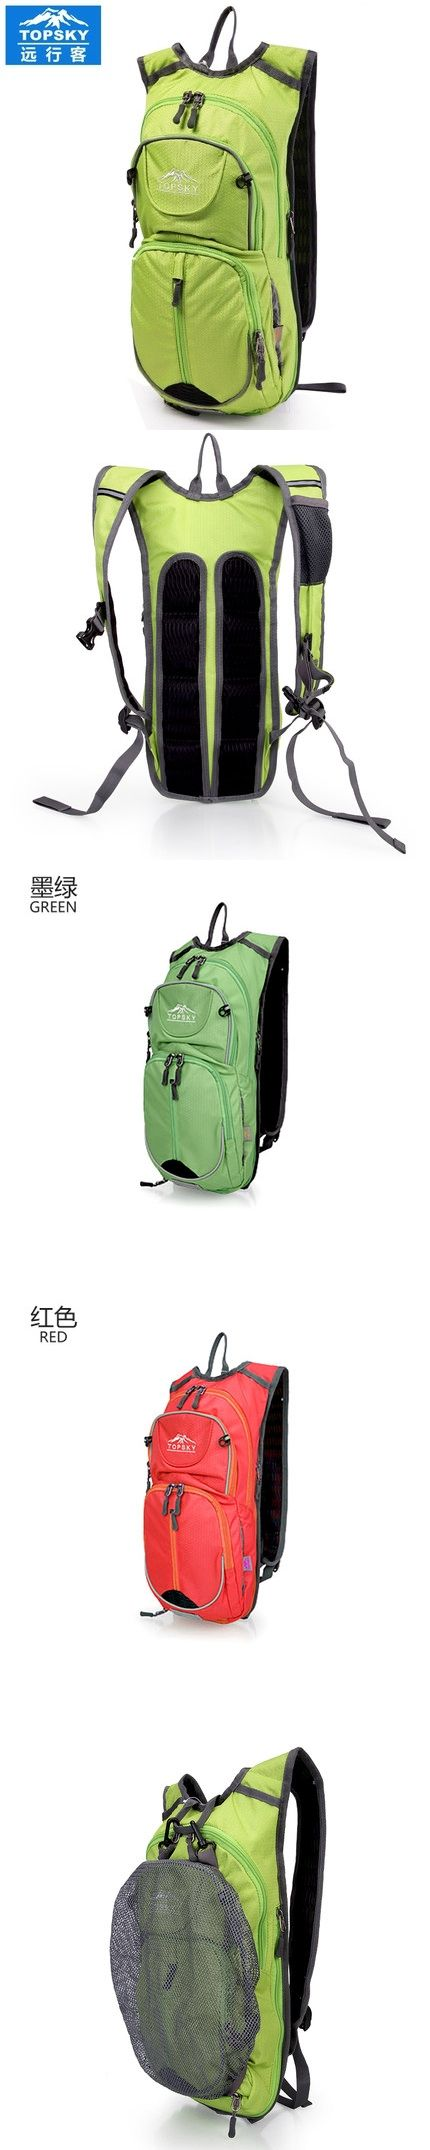 Topsky 20L ACT Camping bag Internal Frame sport women bag travel backpack mochilas professional climbing Backpack sports bags